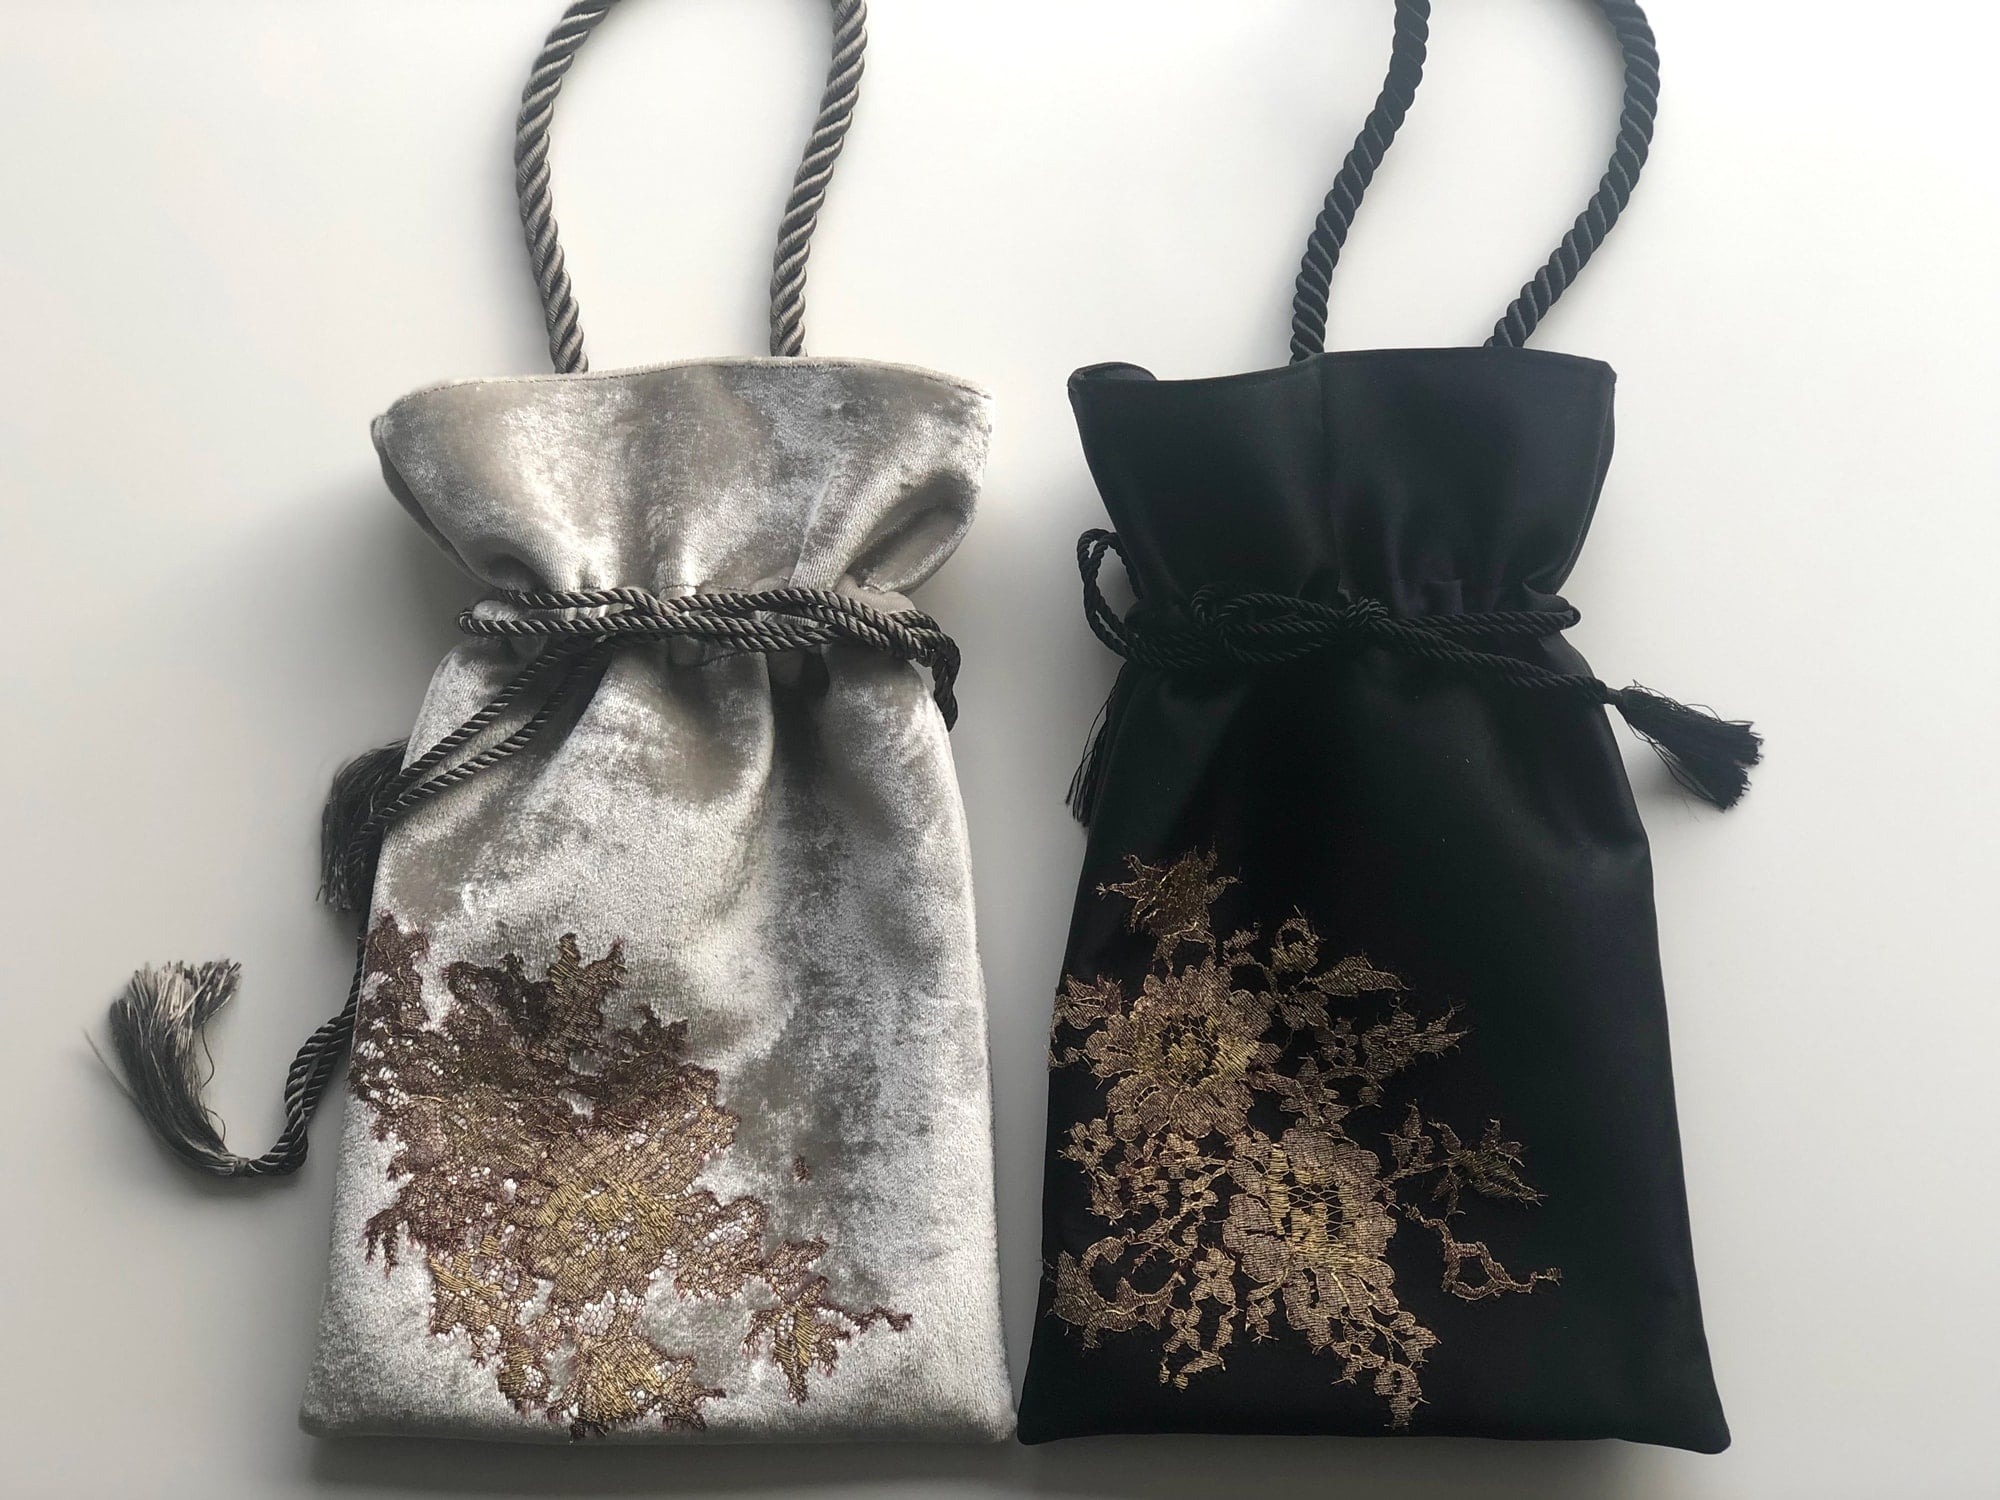 The drawstring bags are popular for using at parties and coordinating with kimonos.